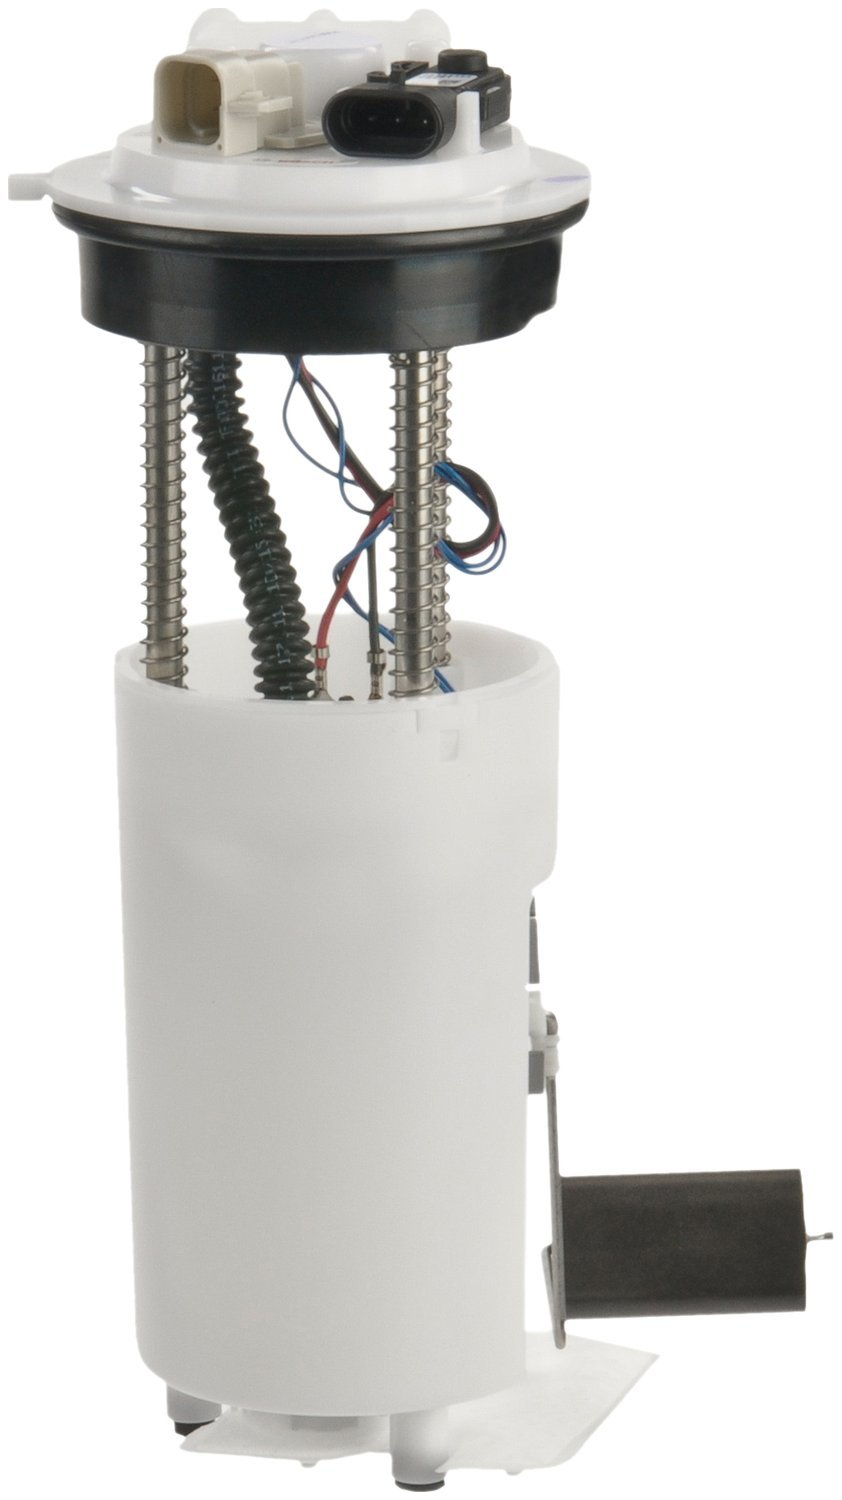 Bosch 67390 Original Equipment Replacement Electric Fuel Pump For 2000 Chevrolet Silverado 1500 V6 43l With 2 Automotive